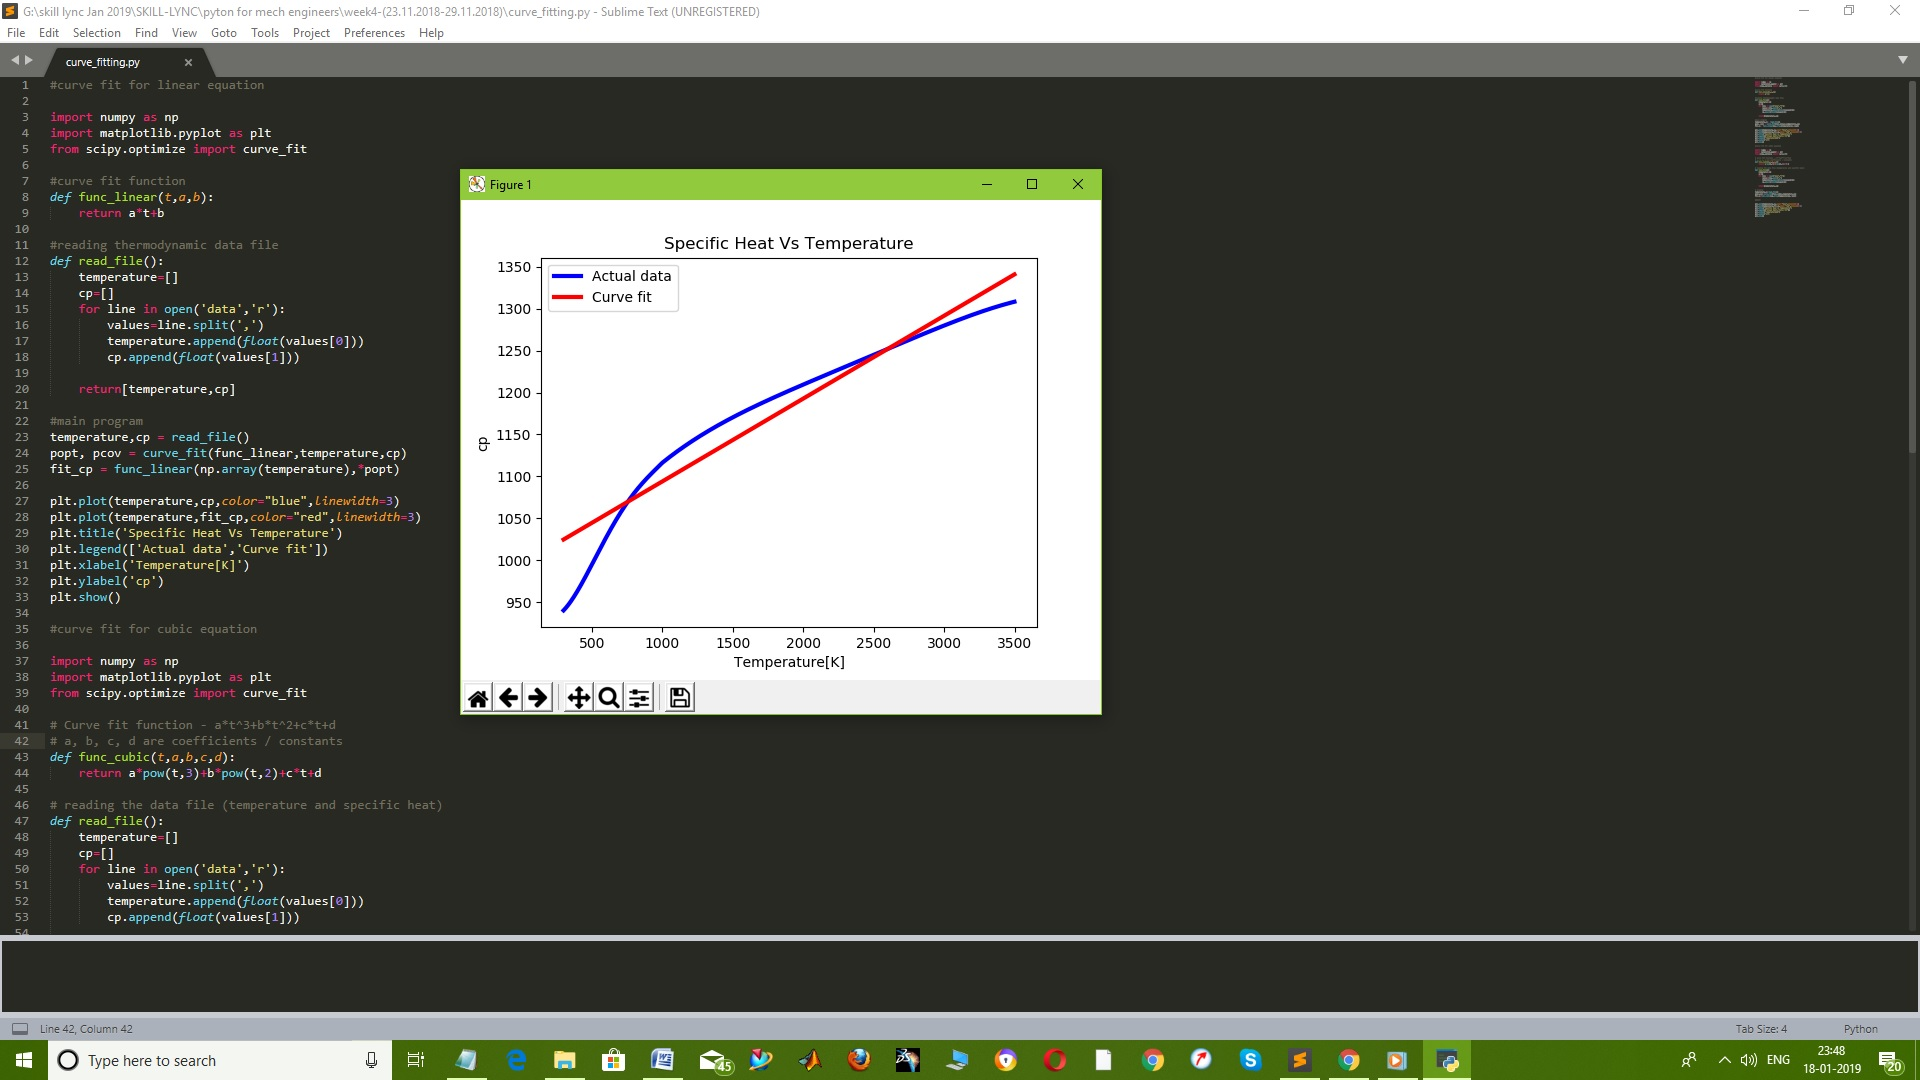 TEMPERATURE Vs SPECIFIC HEAT - LINEAR CUBIC CURVE FITTING